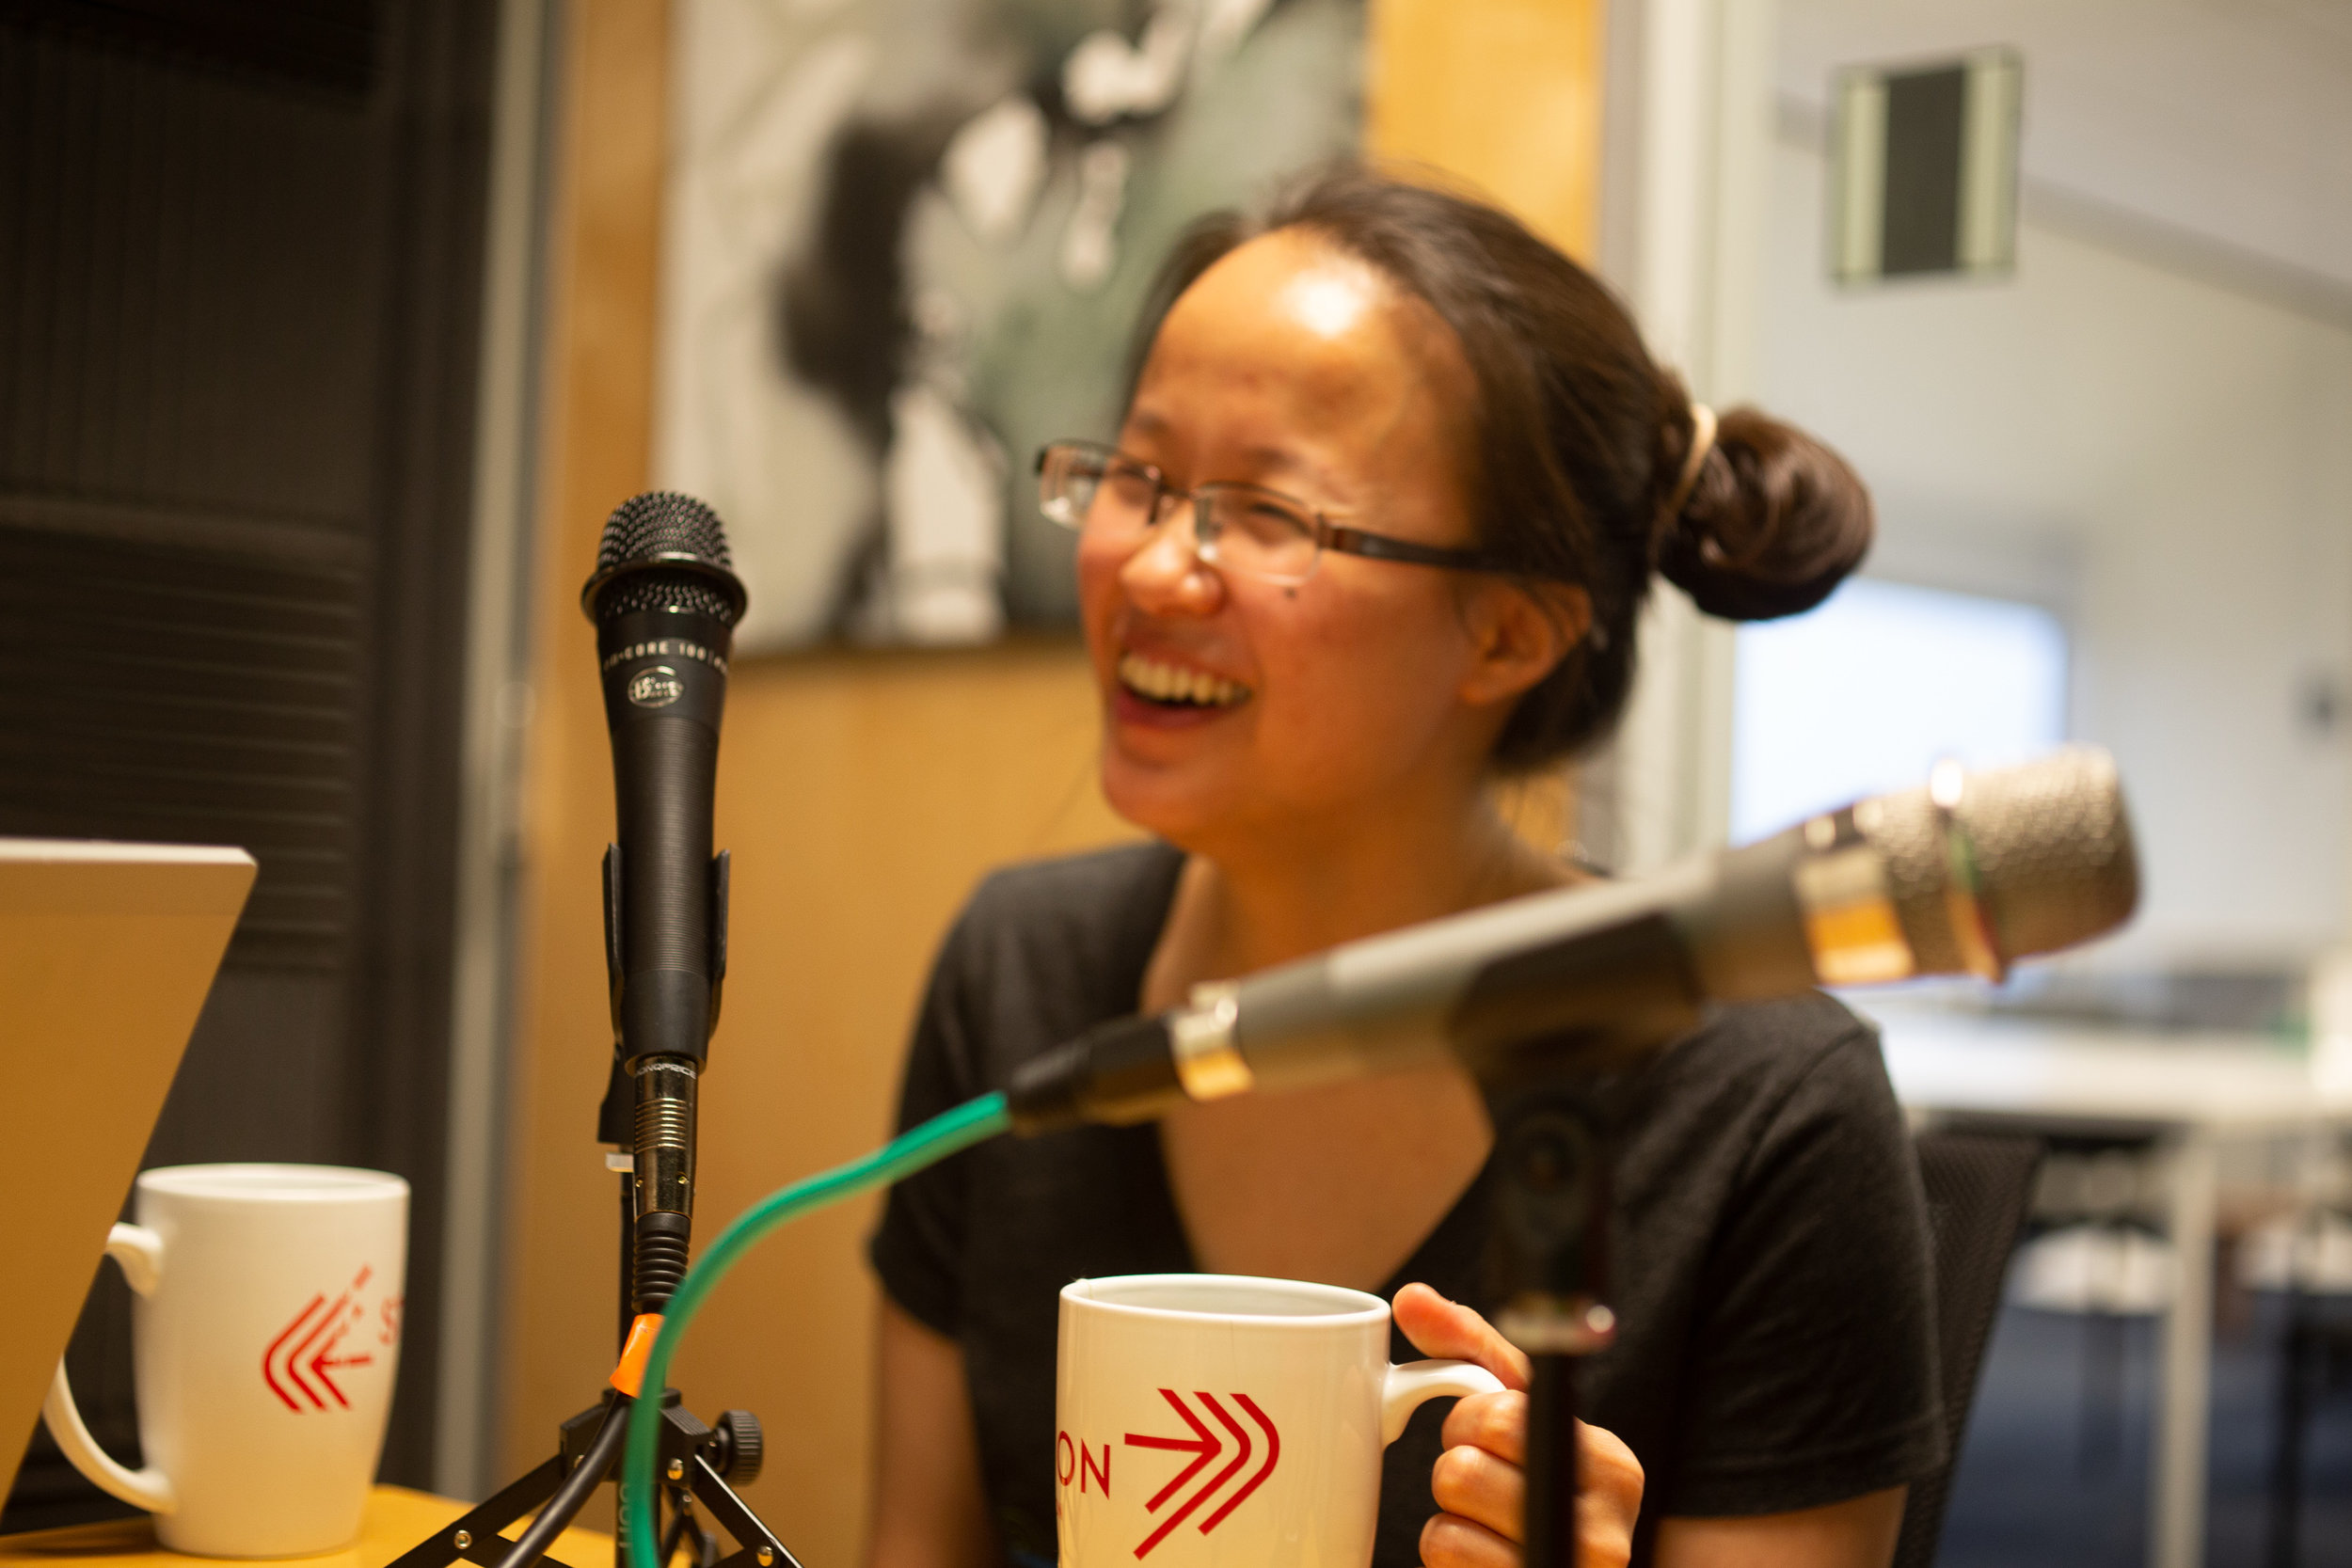 Amanda Shih, cofounder of Code Park Houston, speaks her mind while recording a podcast at Station Houston. July 11th, 2018. Courtesy of Wanjun Zhang.